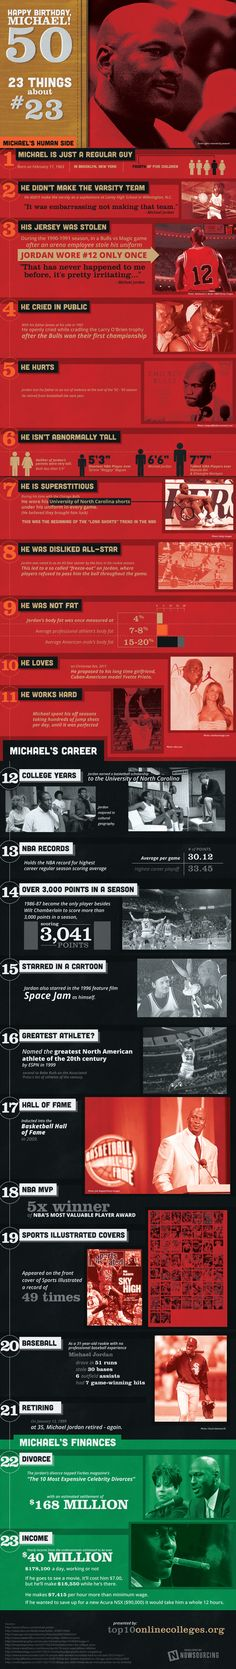 Relive the career or a baskeball legend in this video that showcases Michael Jordan's greatest moves on the court and this infographic about his life.